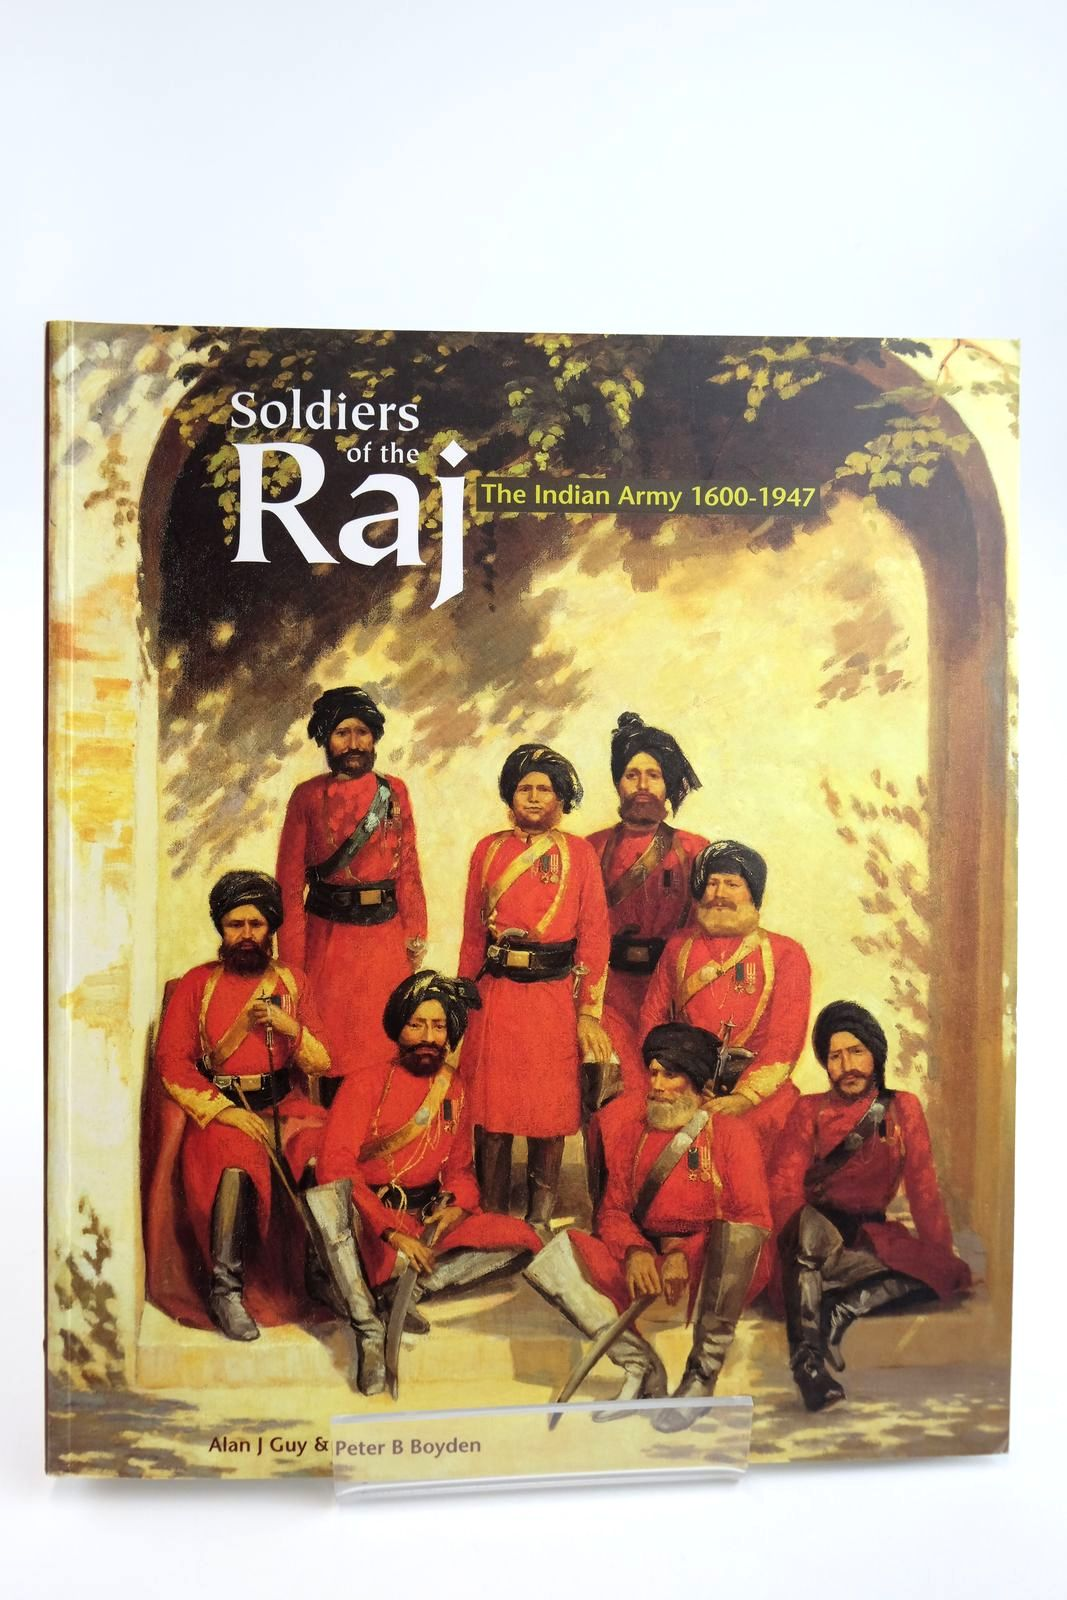 Photo of SOLDIERS OF THE RAJ written by Guy, Alan J. Boyden, Peter B. published by National Army Museum (STOCK CODE: 2133467)  for sale by Stella & Rose's Books